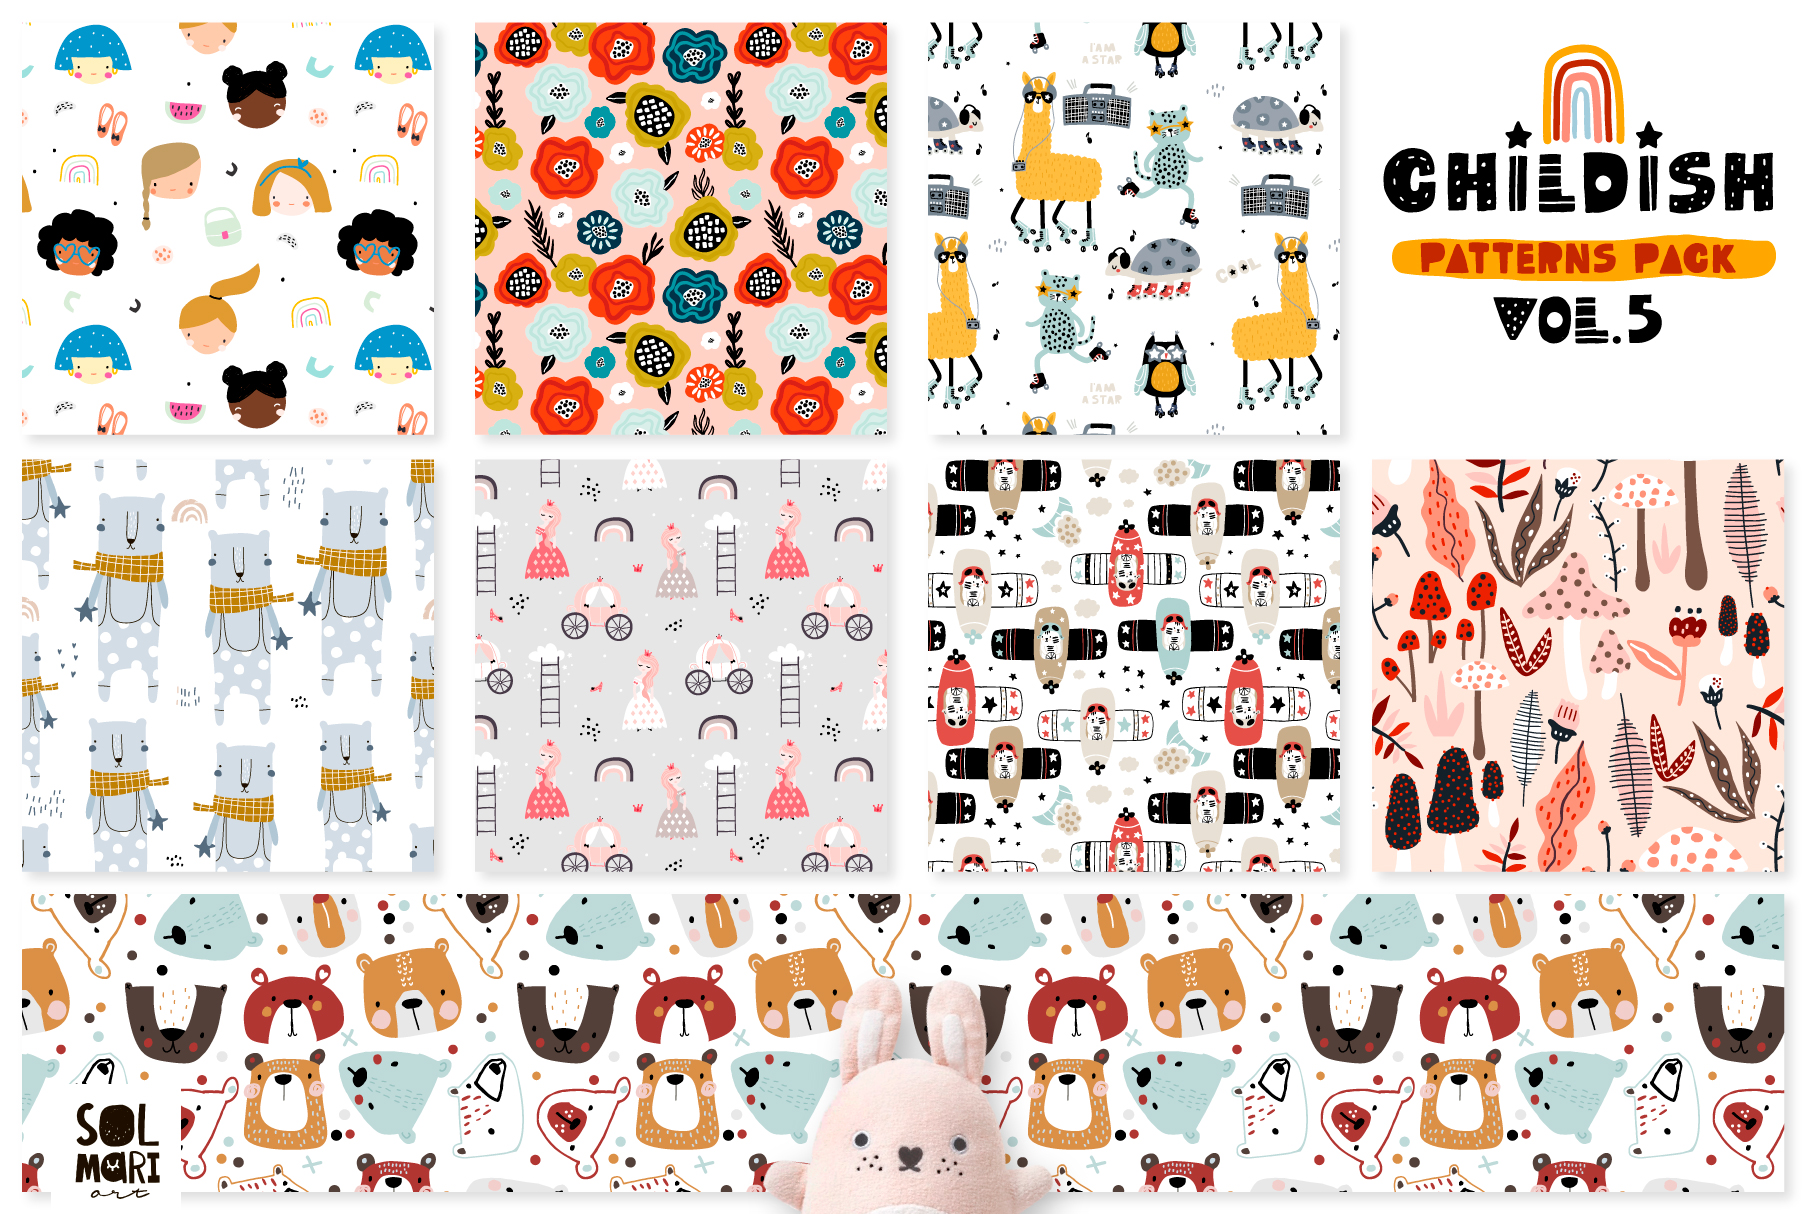 Childish patterns pack vol. 5 example image 7